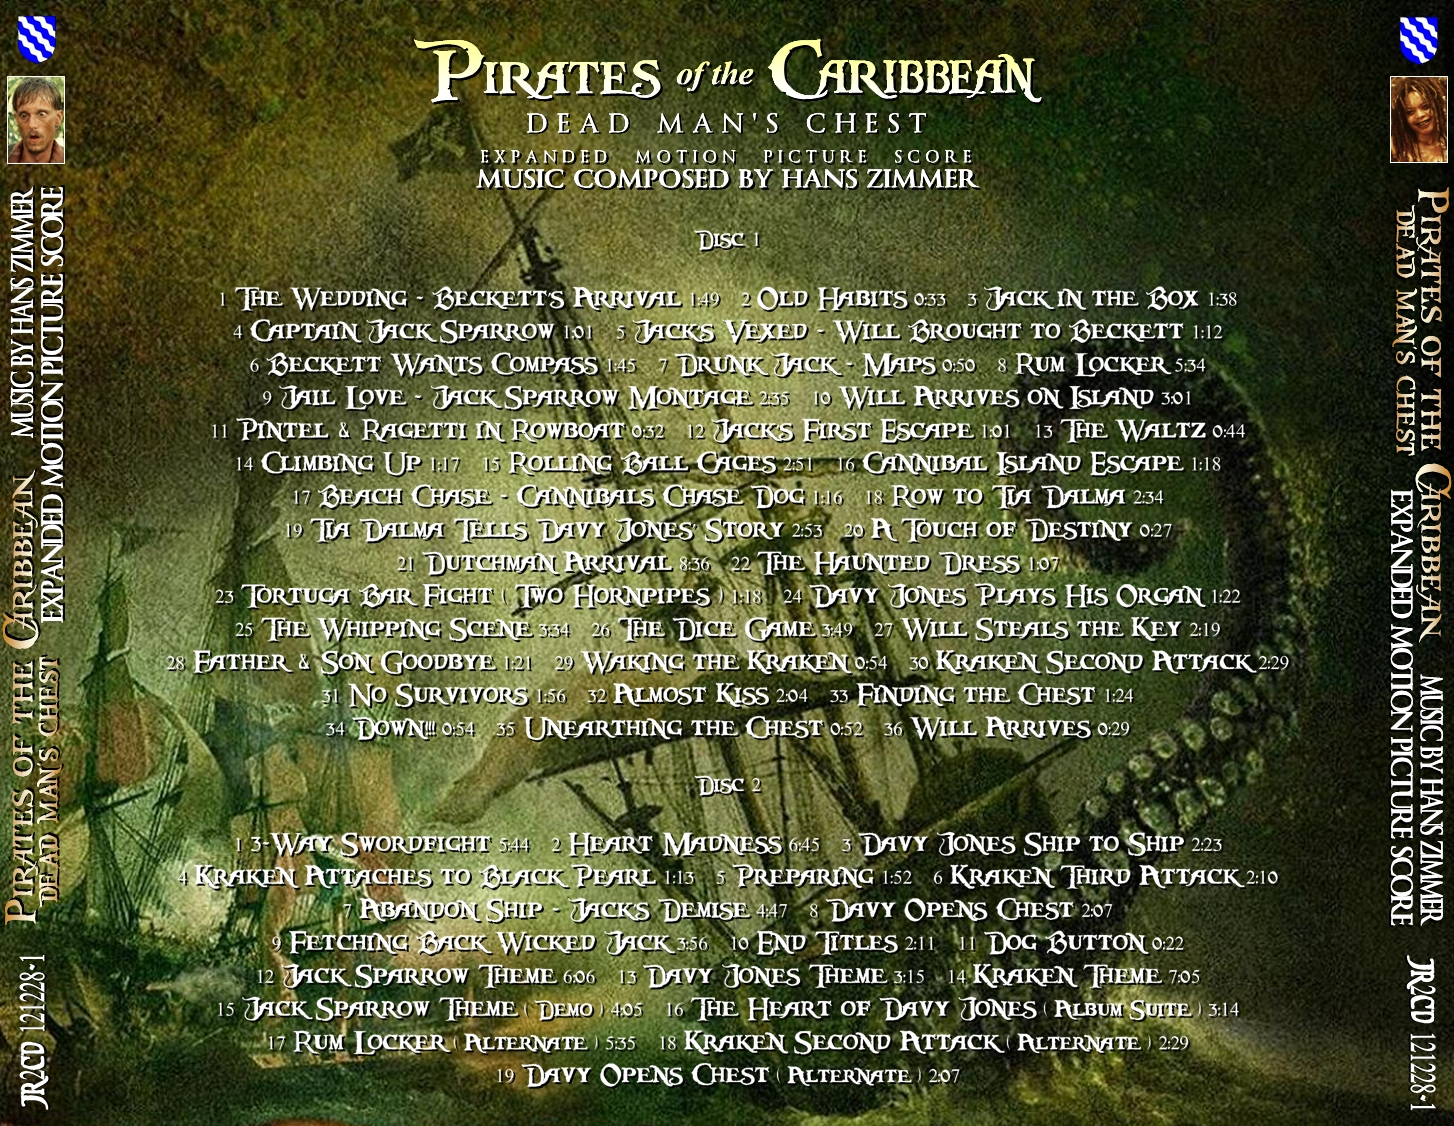 LE BLOG DE CHIEF DUNDEE: PIRATES OF THE CARIBBEAN: DEAD